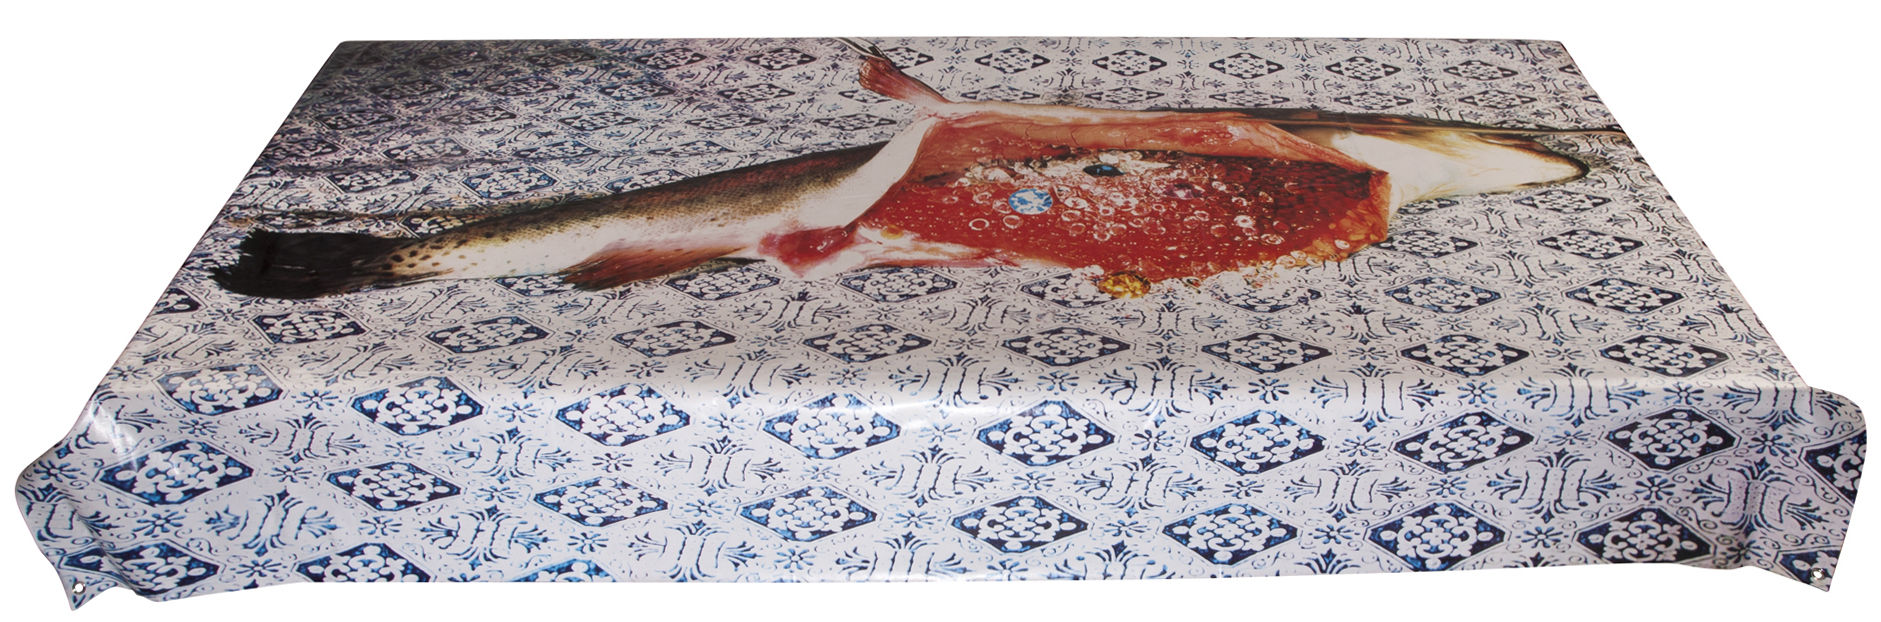 Tableware - Napkins & Tablecloths - Toiletpaper - Fish Tablecloth by Seletti - Fish - Oilcloth